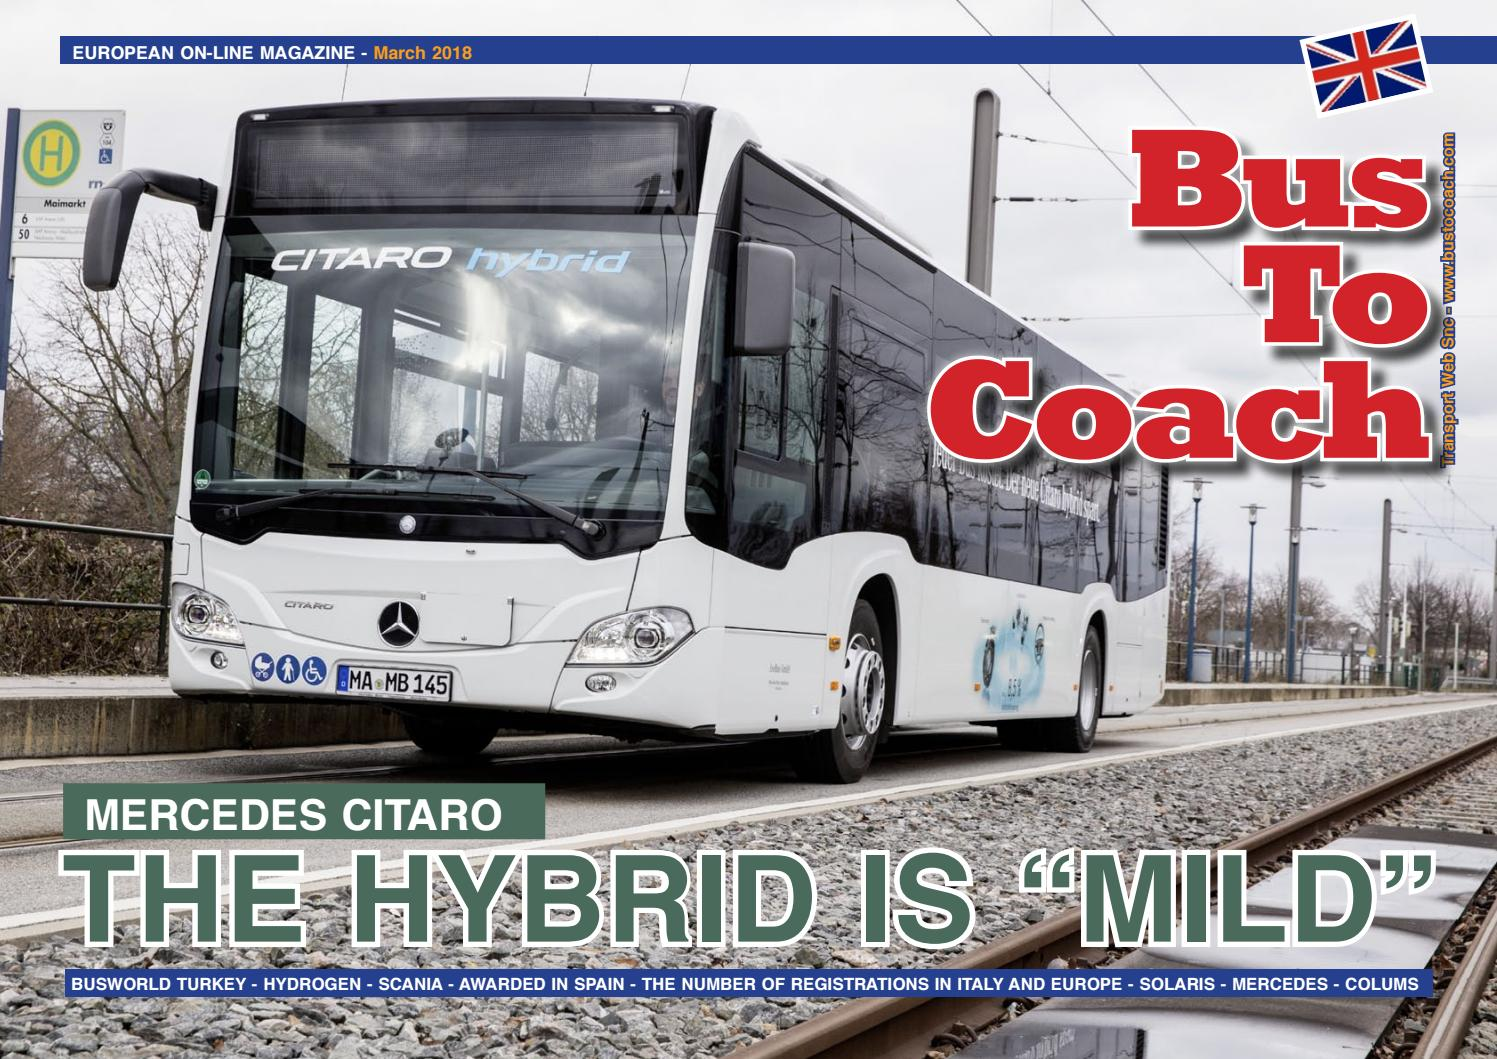 BUSTOCOACH EUROPEAN ON-LINE MAGAZINE – March 2018 by Transport Web ...